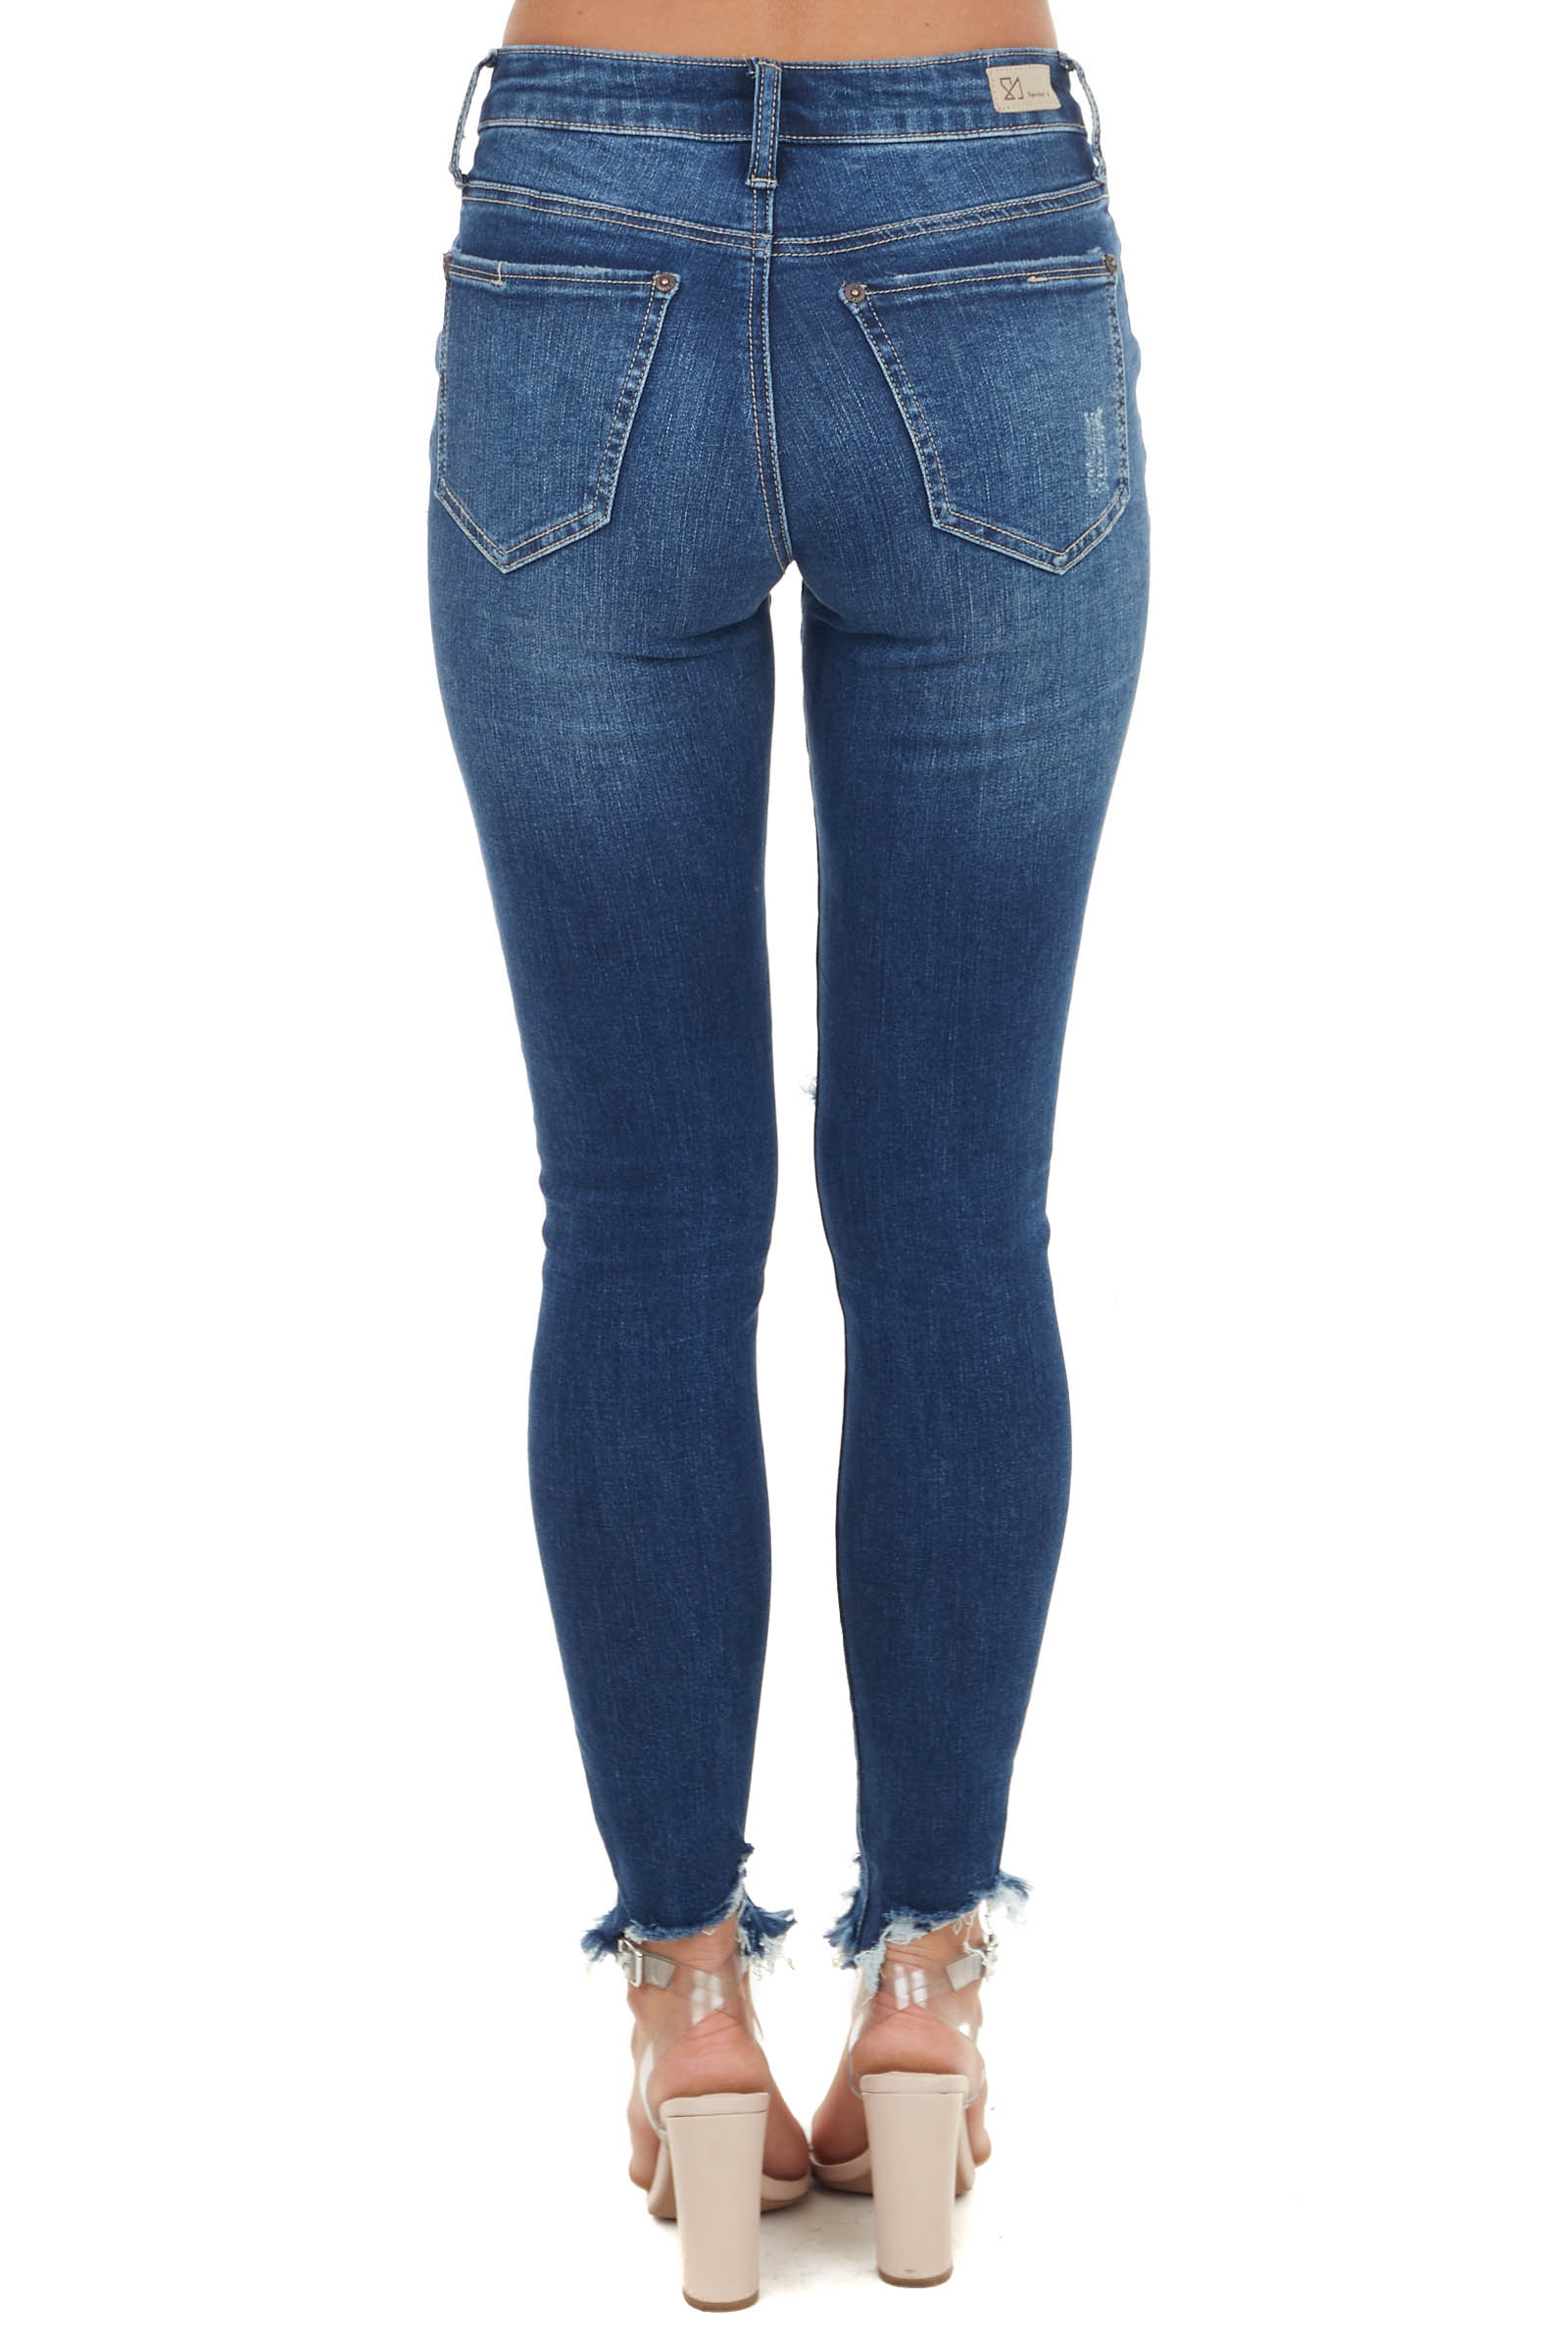 Medium Wash Mid Rise Skinny Jean with Distressed Details